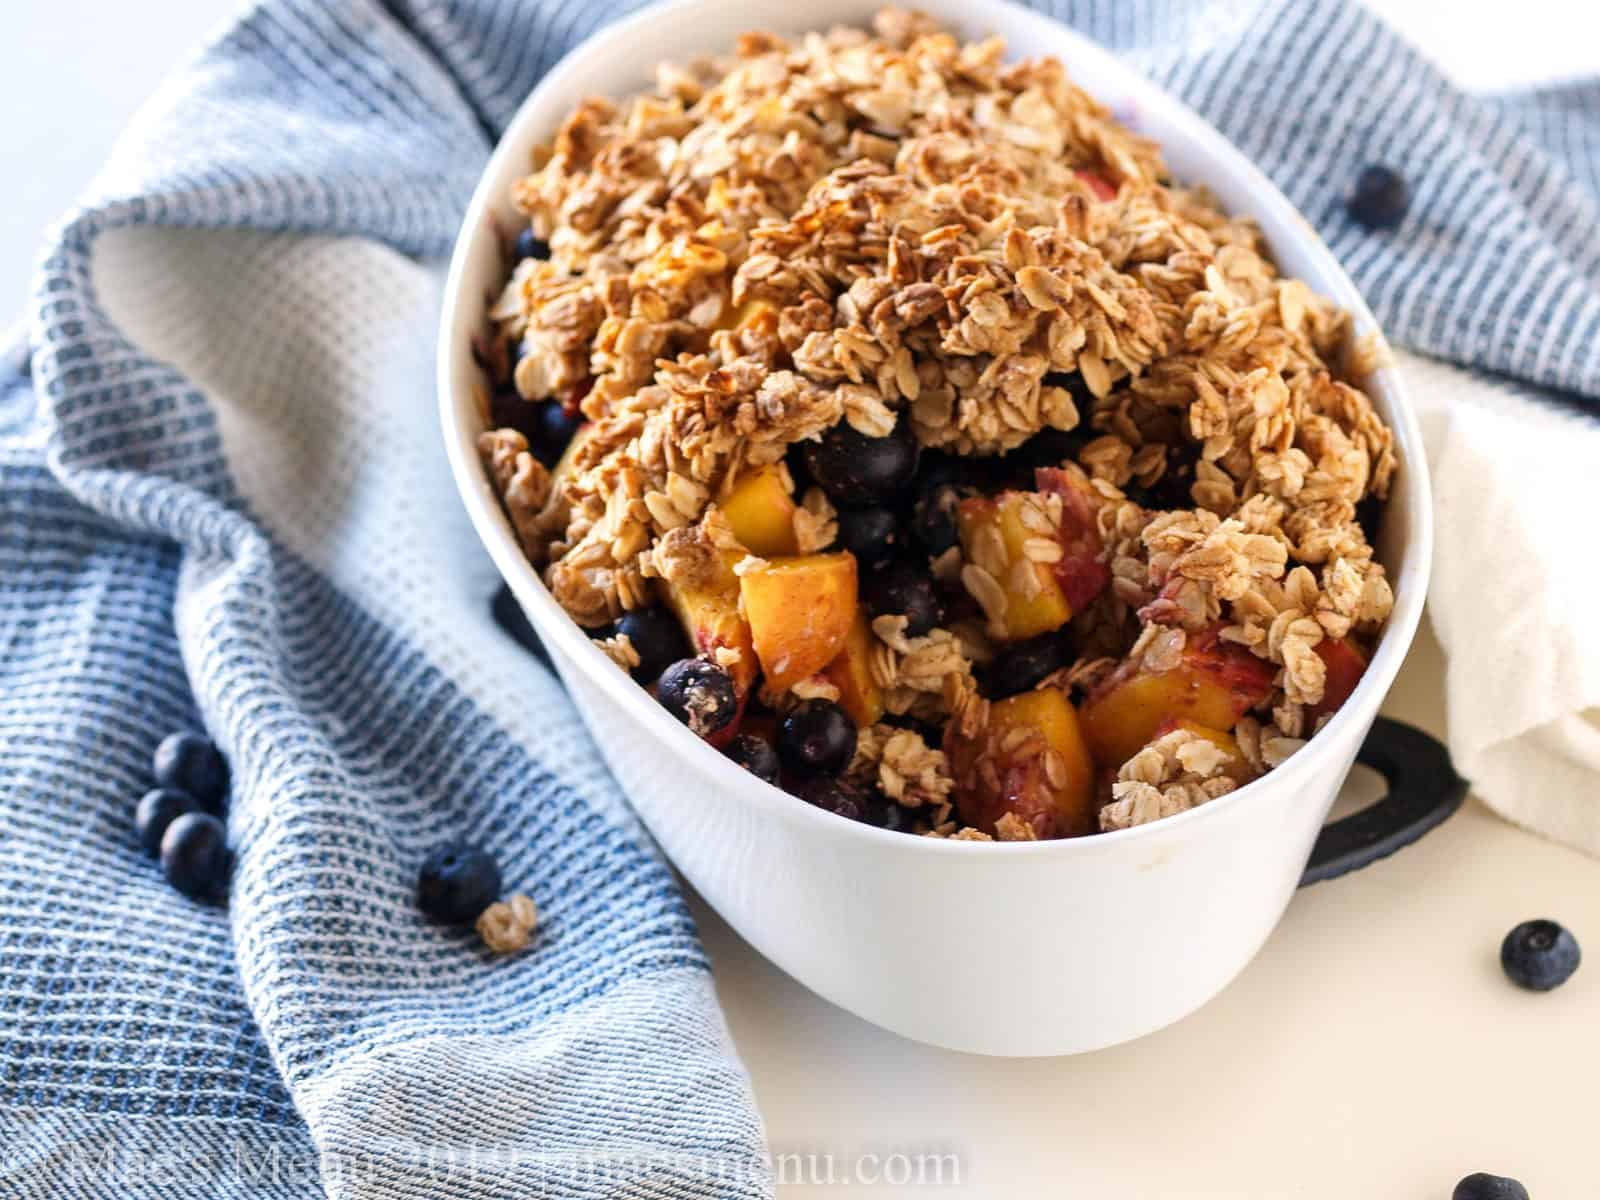 White baking dish of healthy blueberry peach crumble.